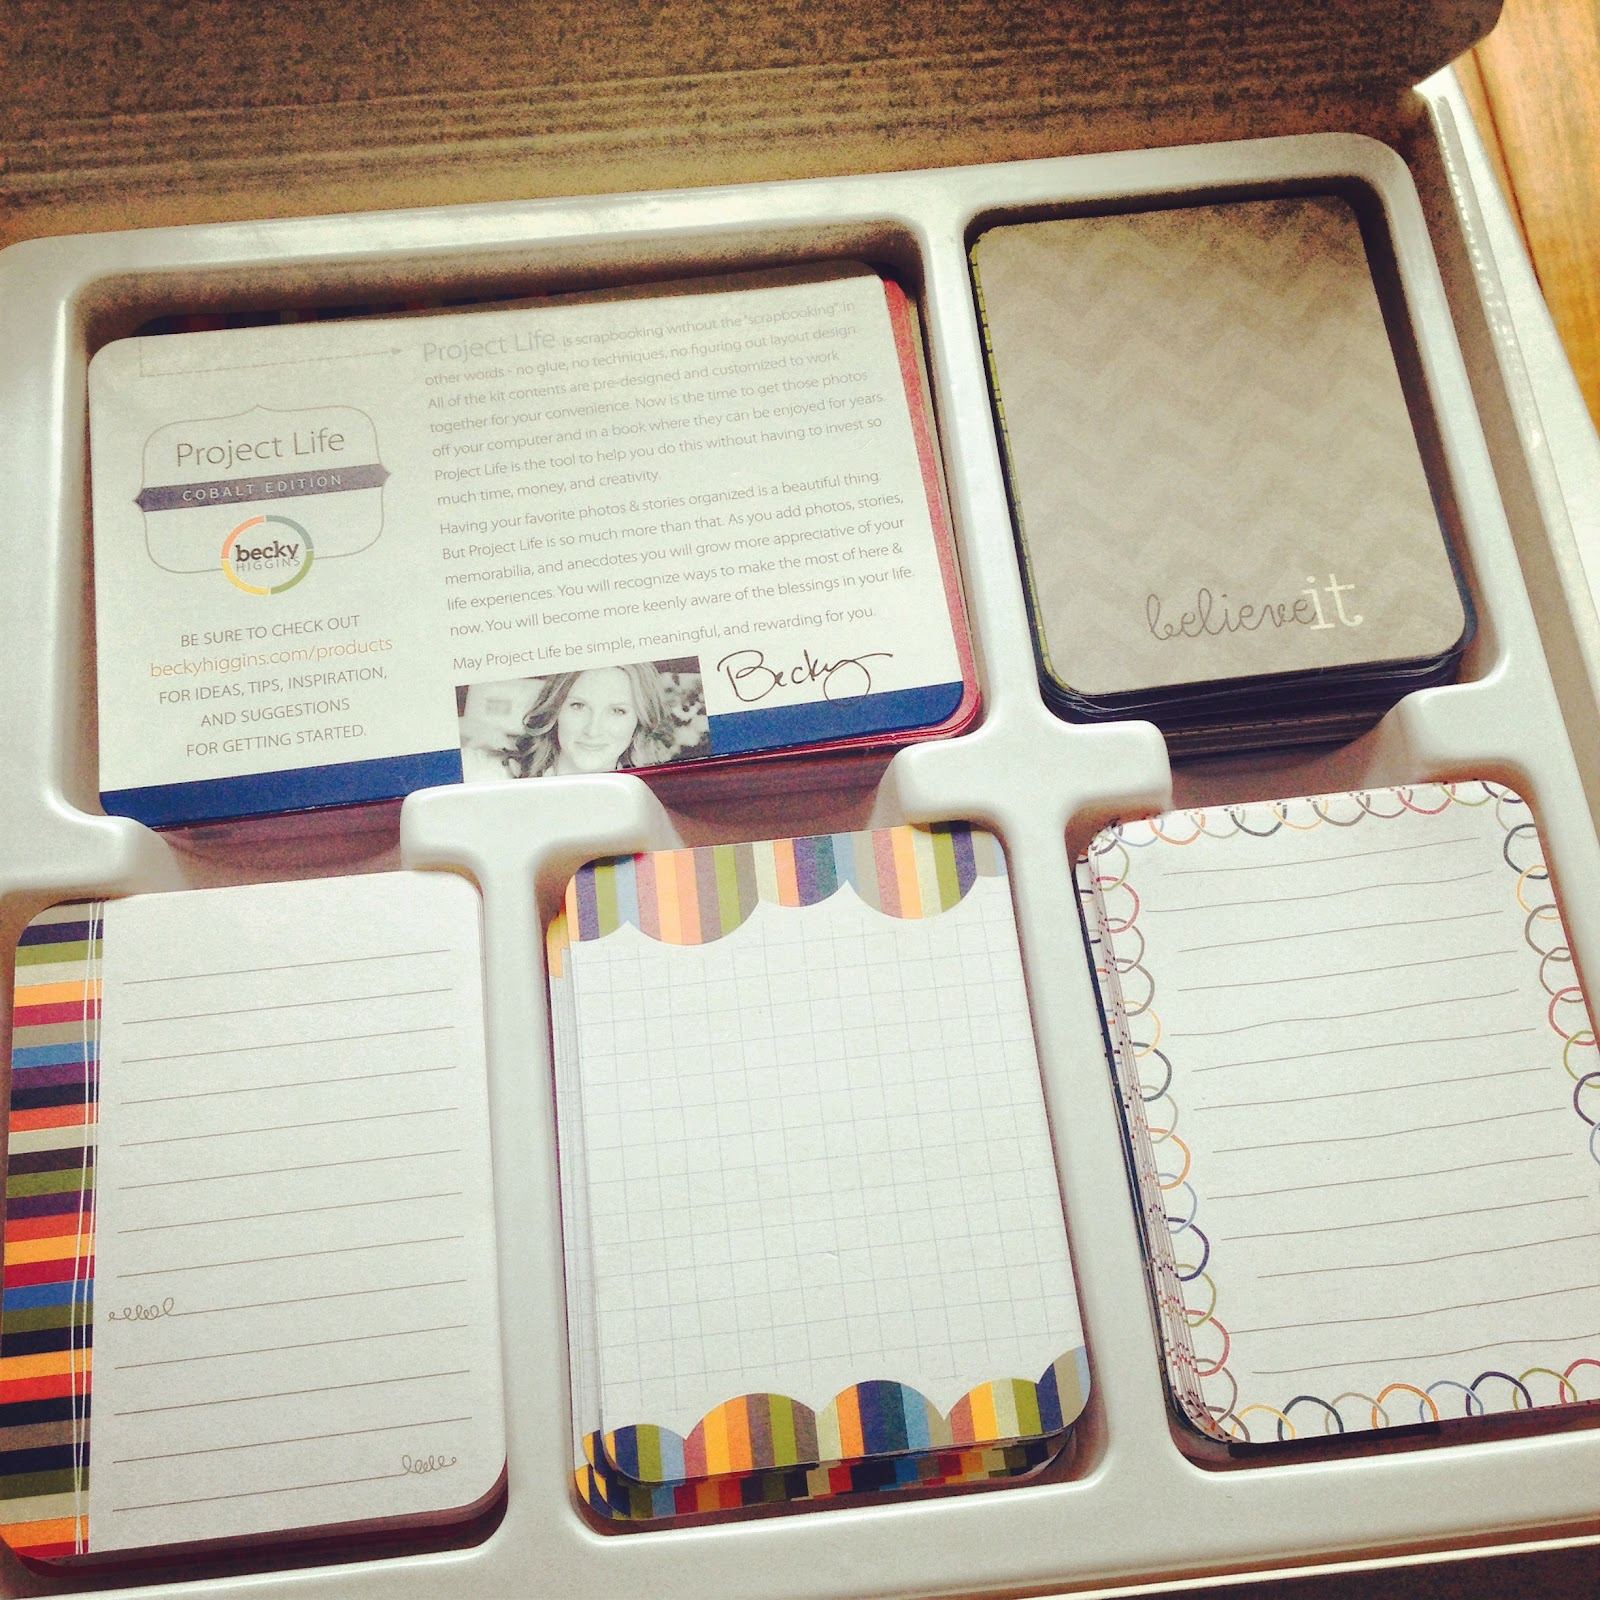 How to make scrapbook for school project - Project Life Simplifies Scrapbooking To Make It Fun And Easy To Find Time For On A Regular Basis One Of The Downfalls Of My Previous Attempts To Scrapbook